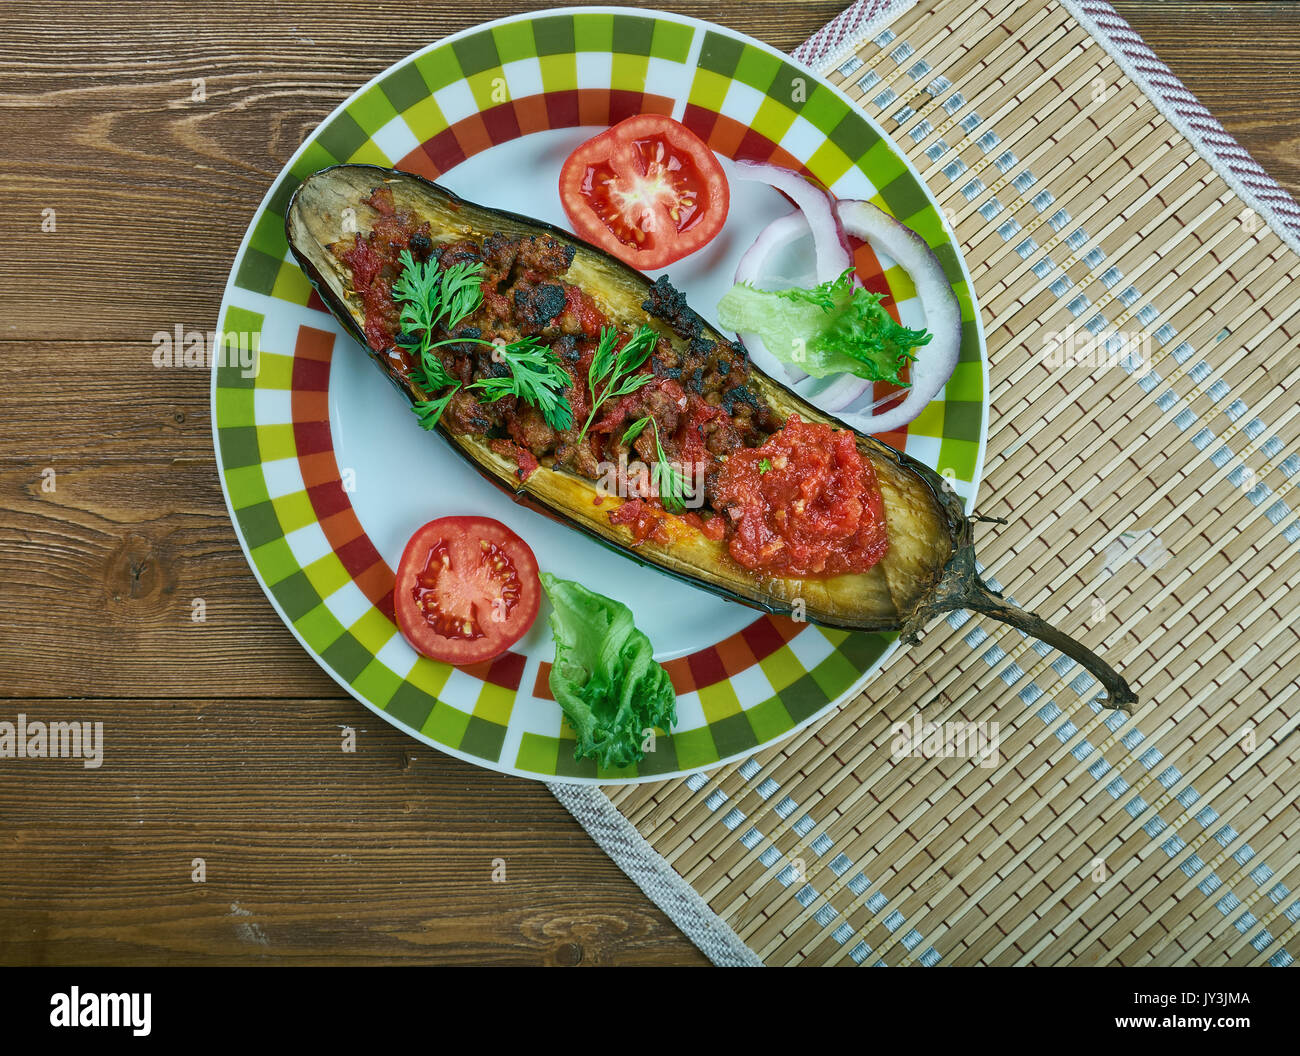 Cheikh stock photos cheikh stock images alamy for Cuisine libanaise